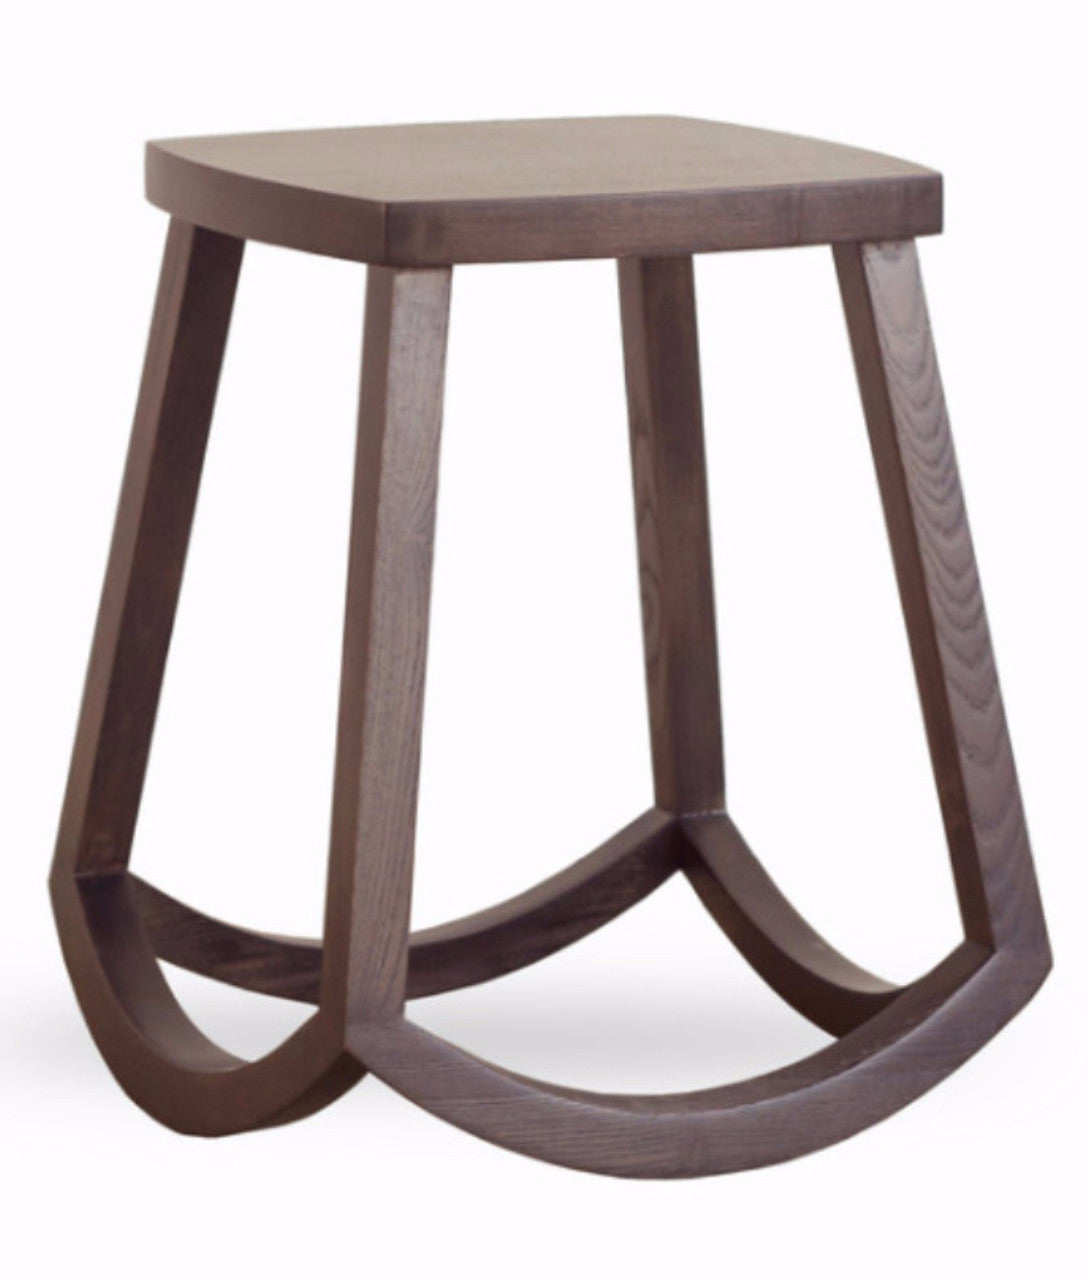 Ziinlife ITRUST STOOL WALNUT BROWN